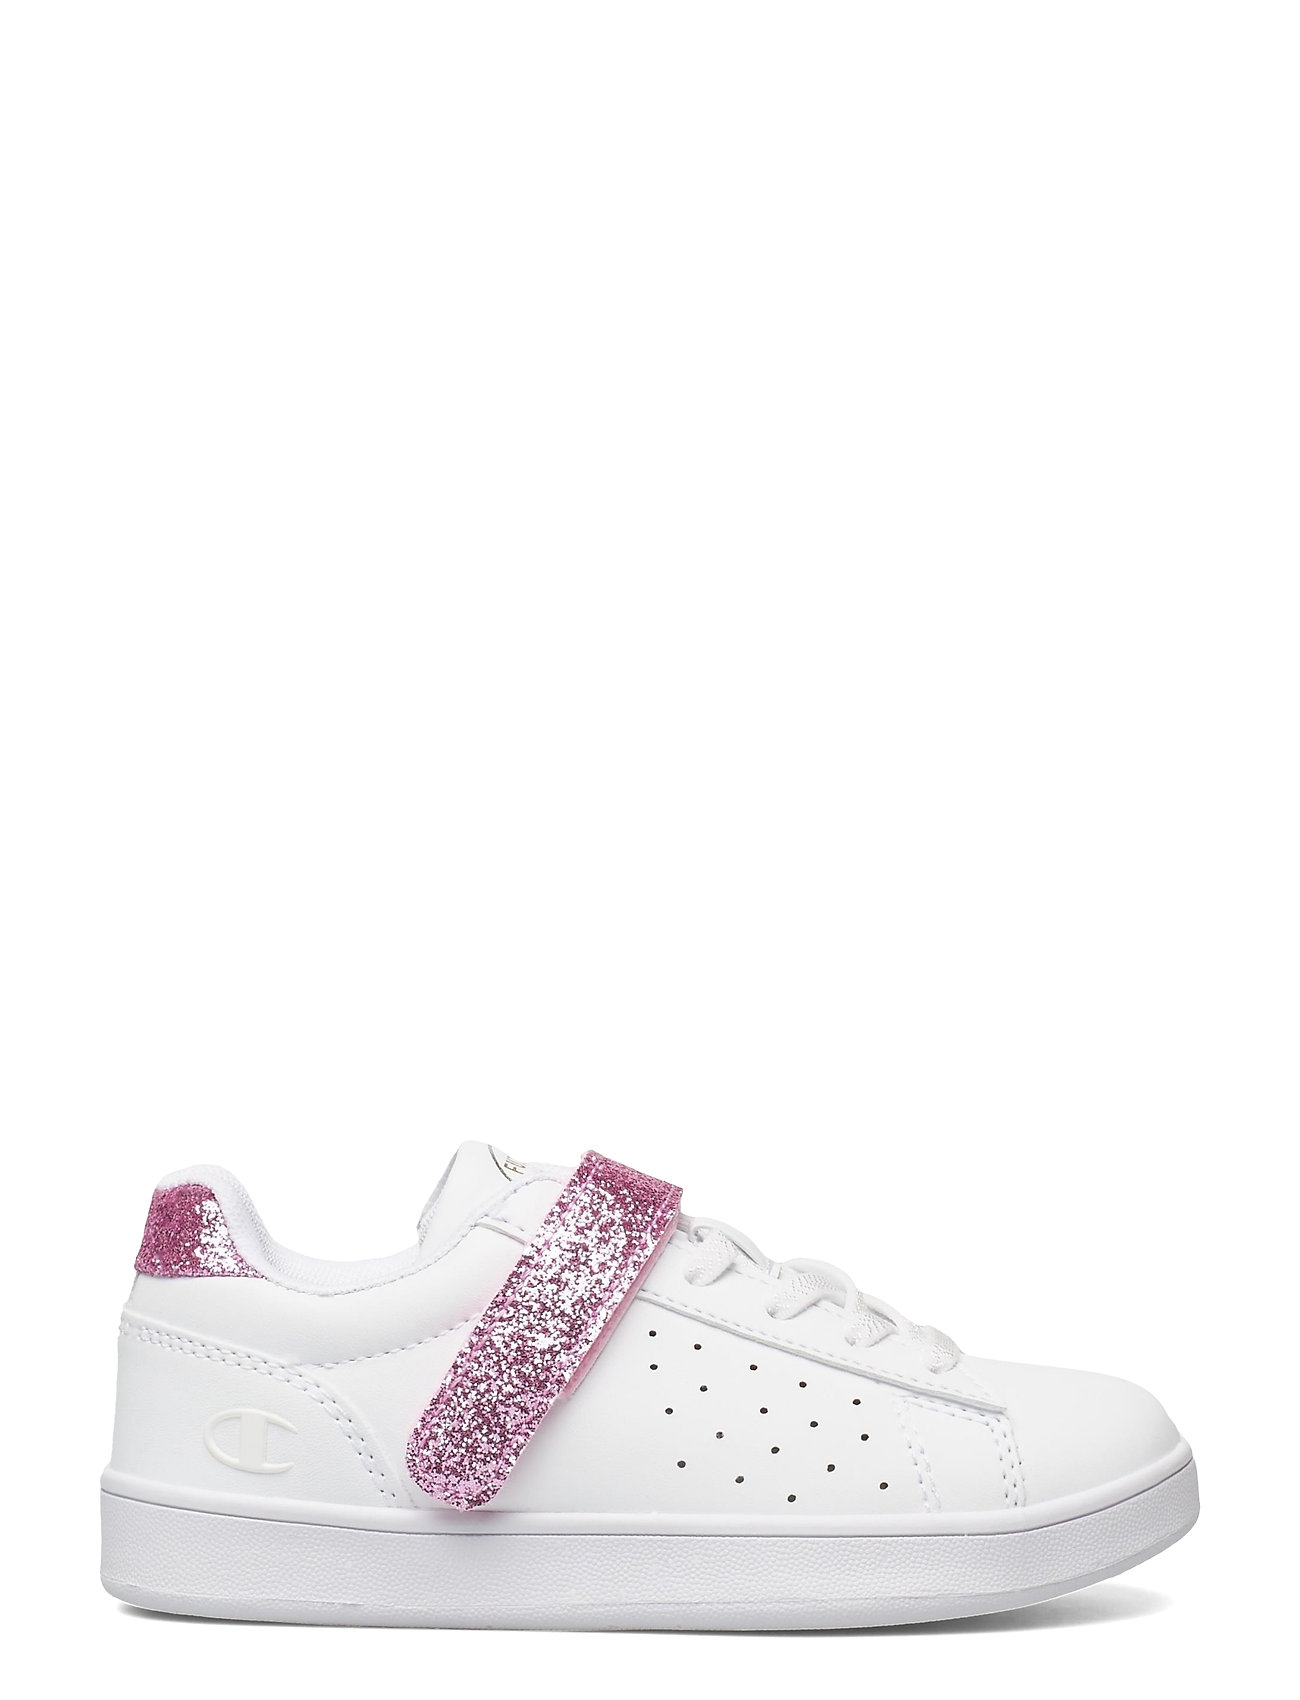 Image of Low Cut Shoe Alexia G Ps Low-top Sneakers Hvid Champion (3504473857)